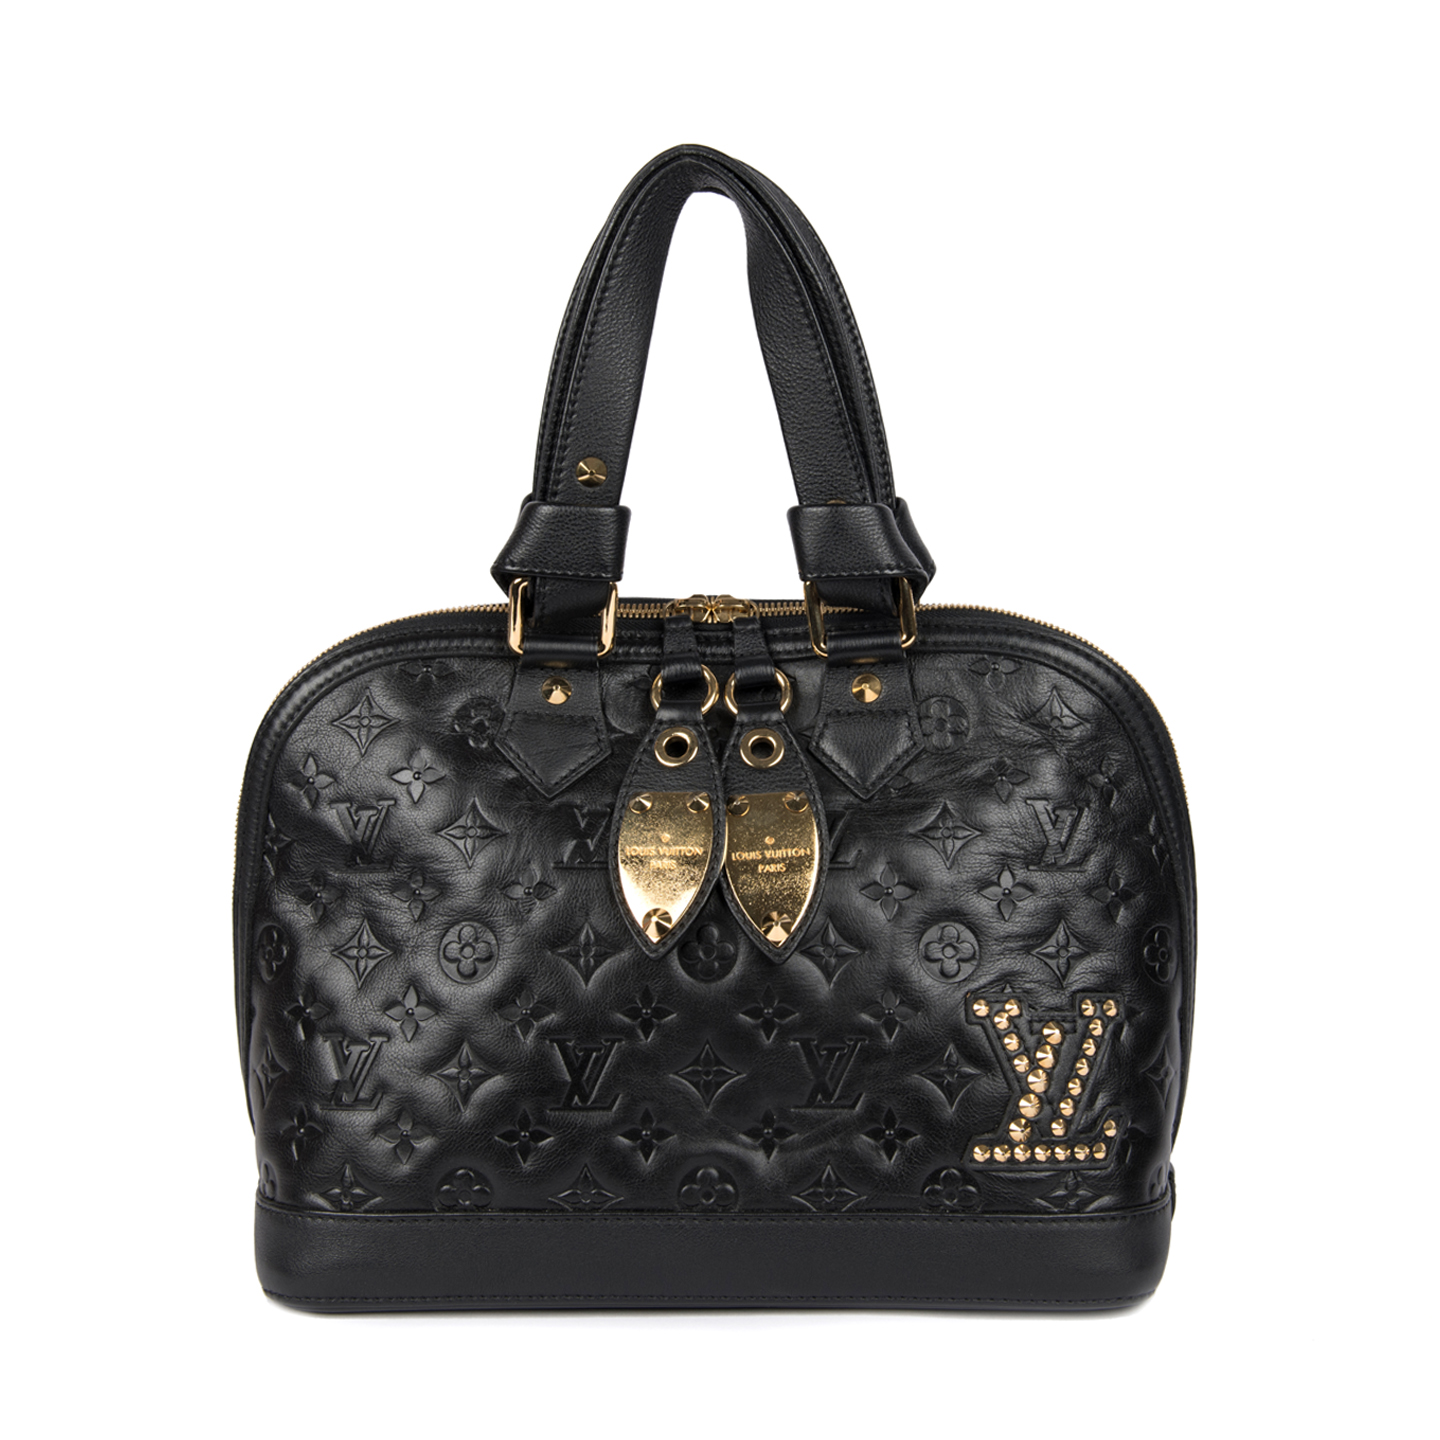 e98cfb40d576 Louis Vuitton Limited Edition Monogram Double Jeu Neo Alma Bag ...